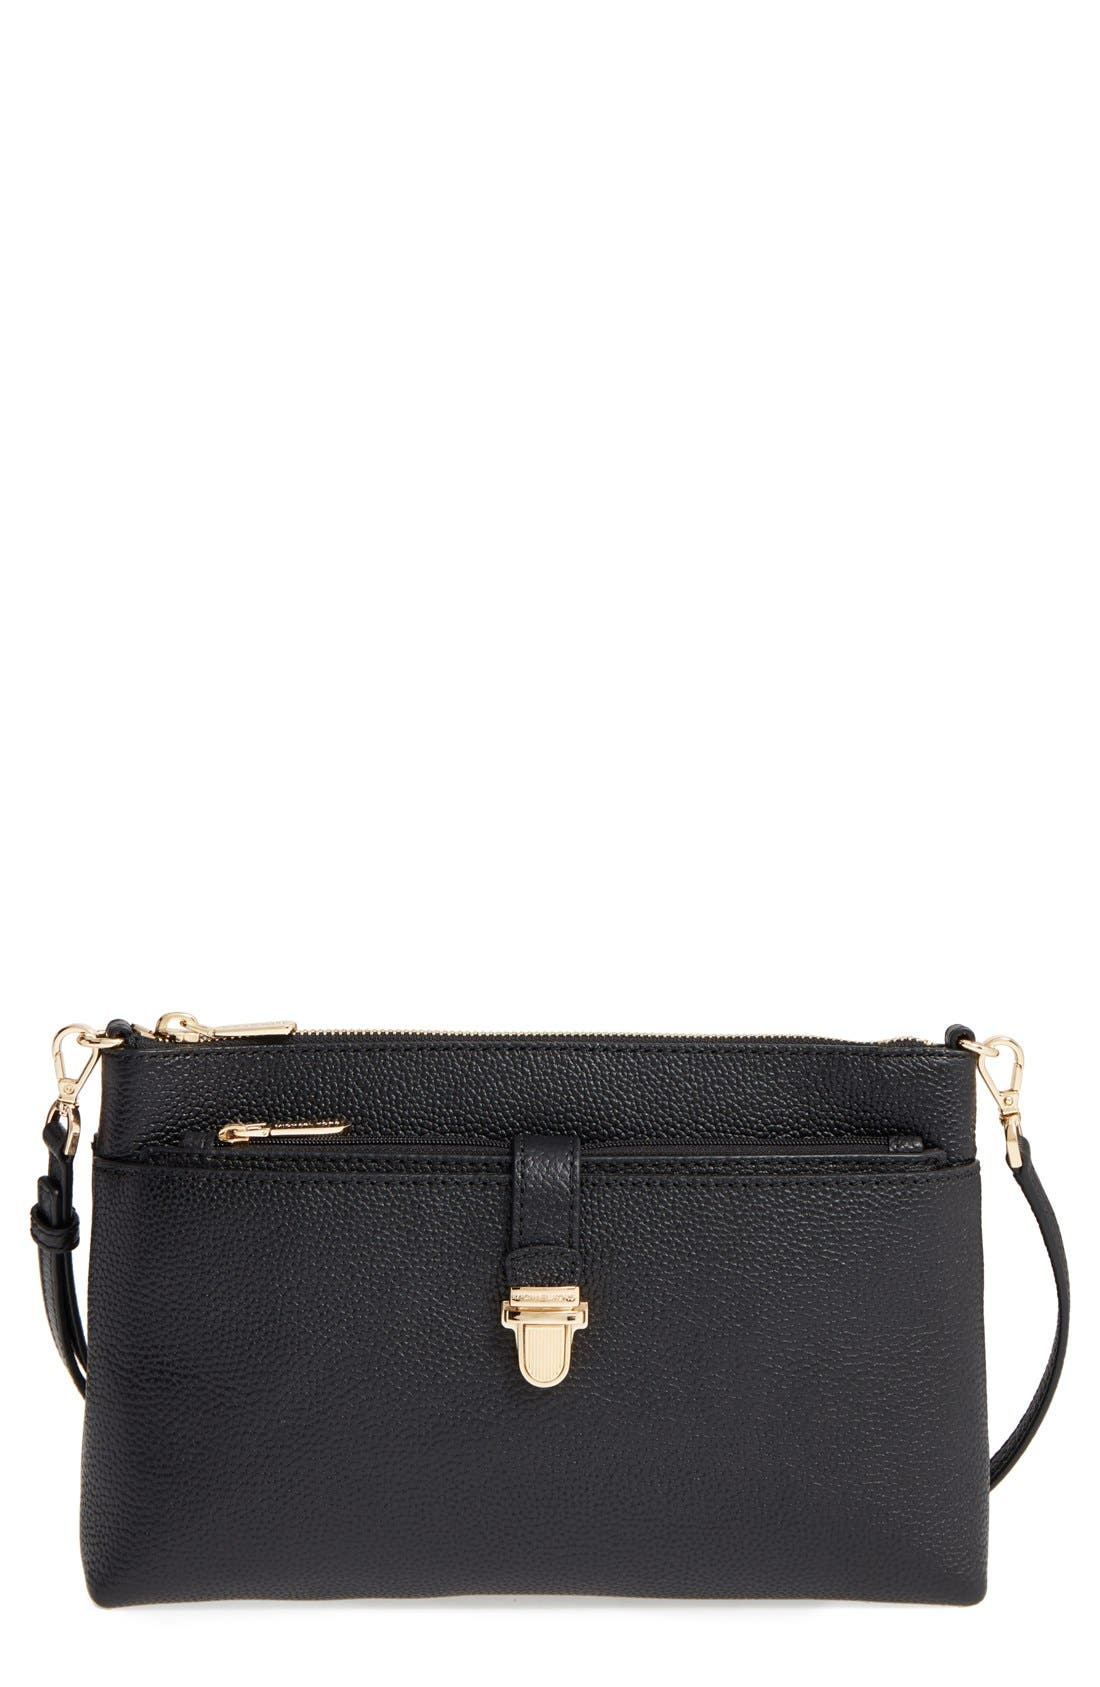 MICHAEL Michael Kors Large Mercer Leather Crossbody Bag